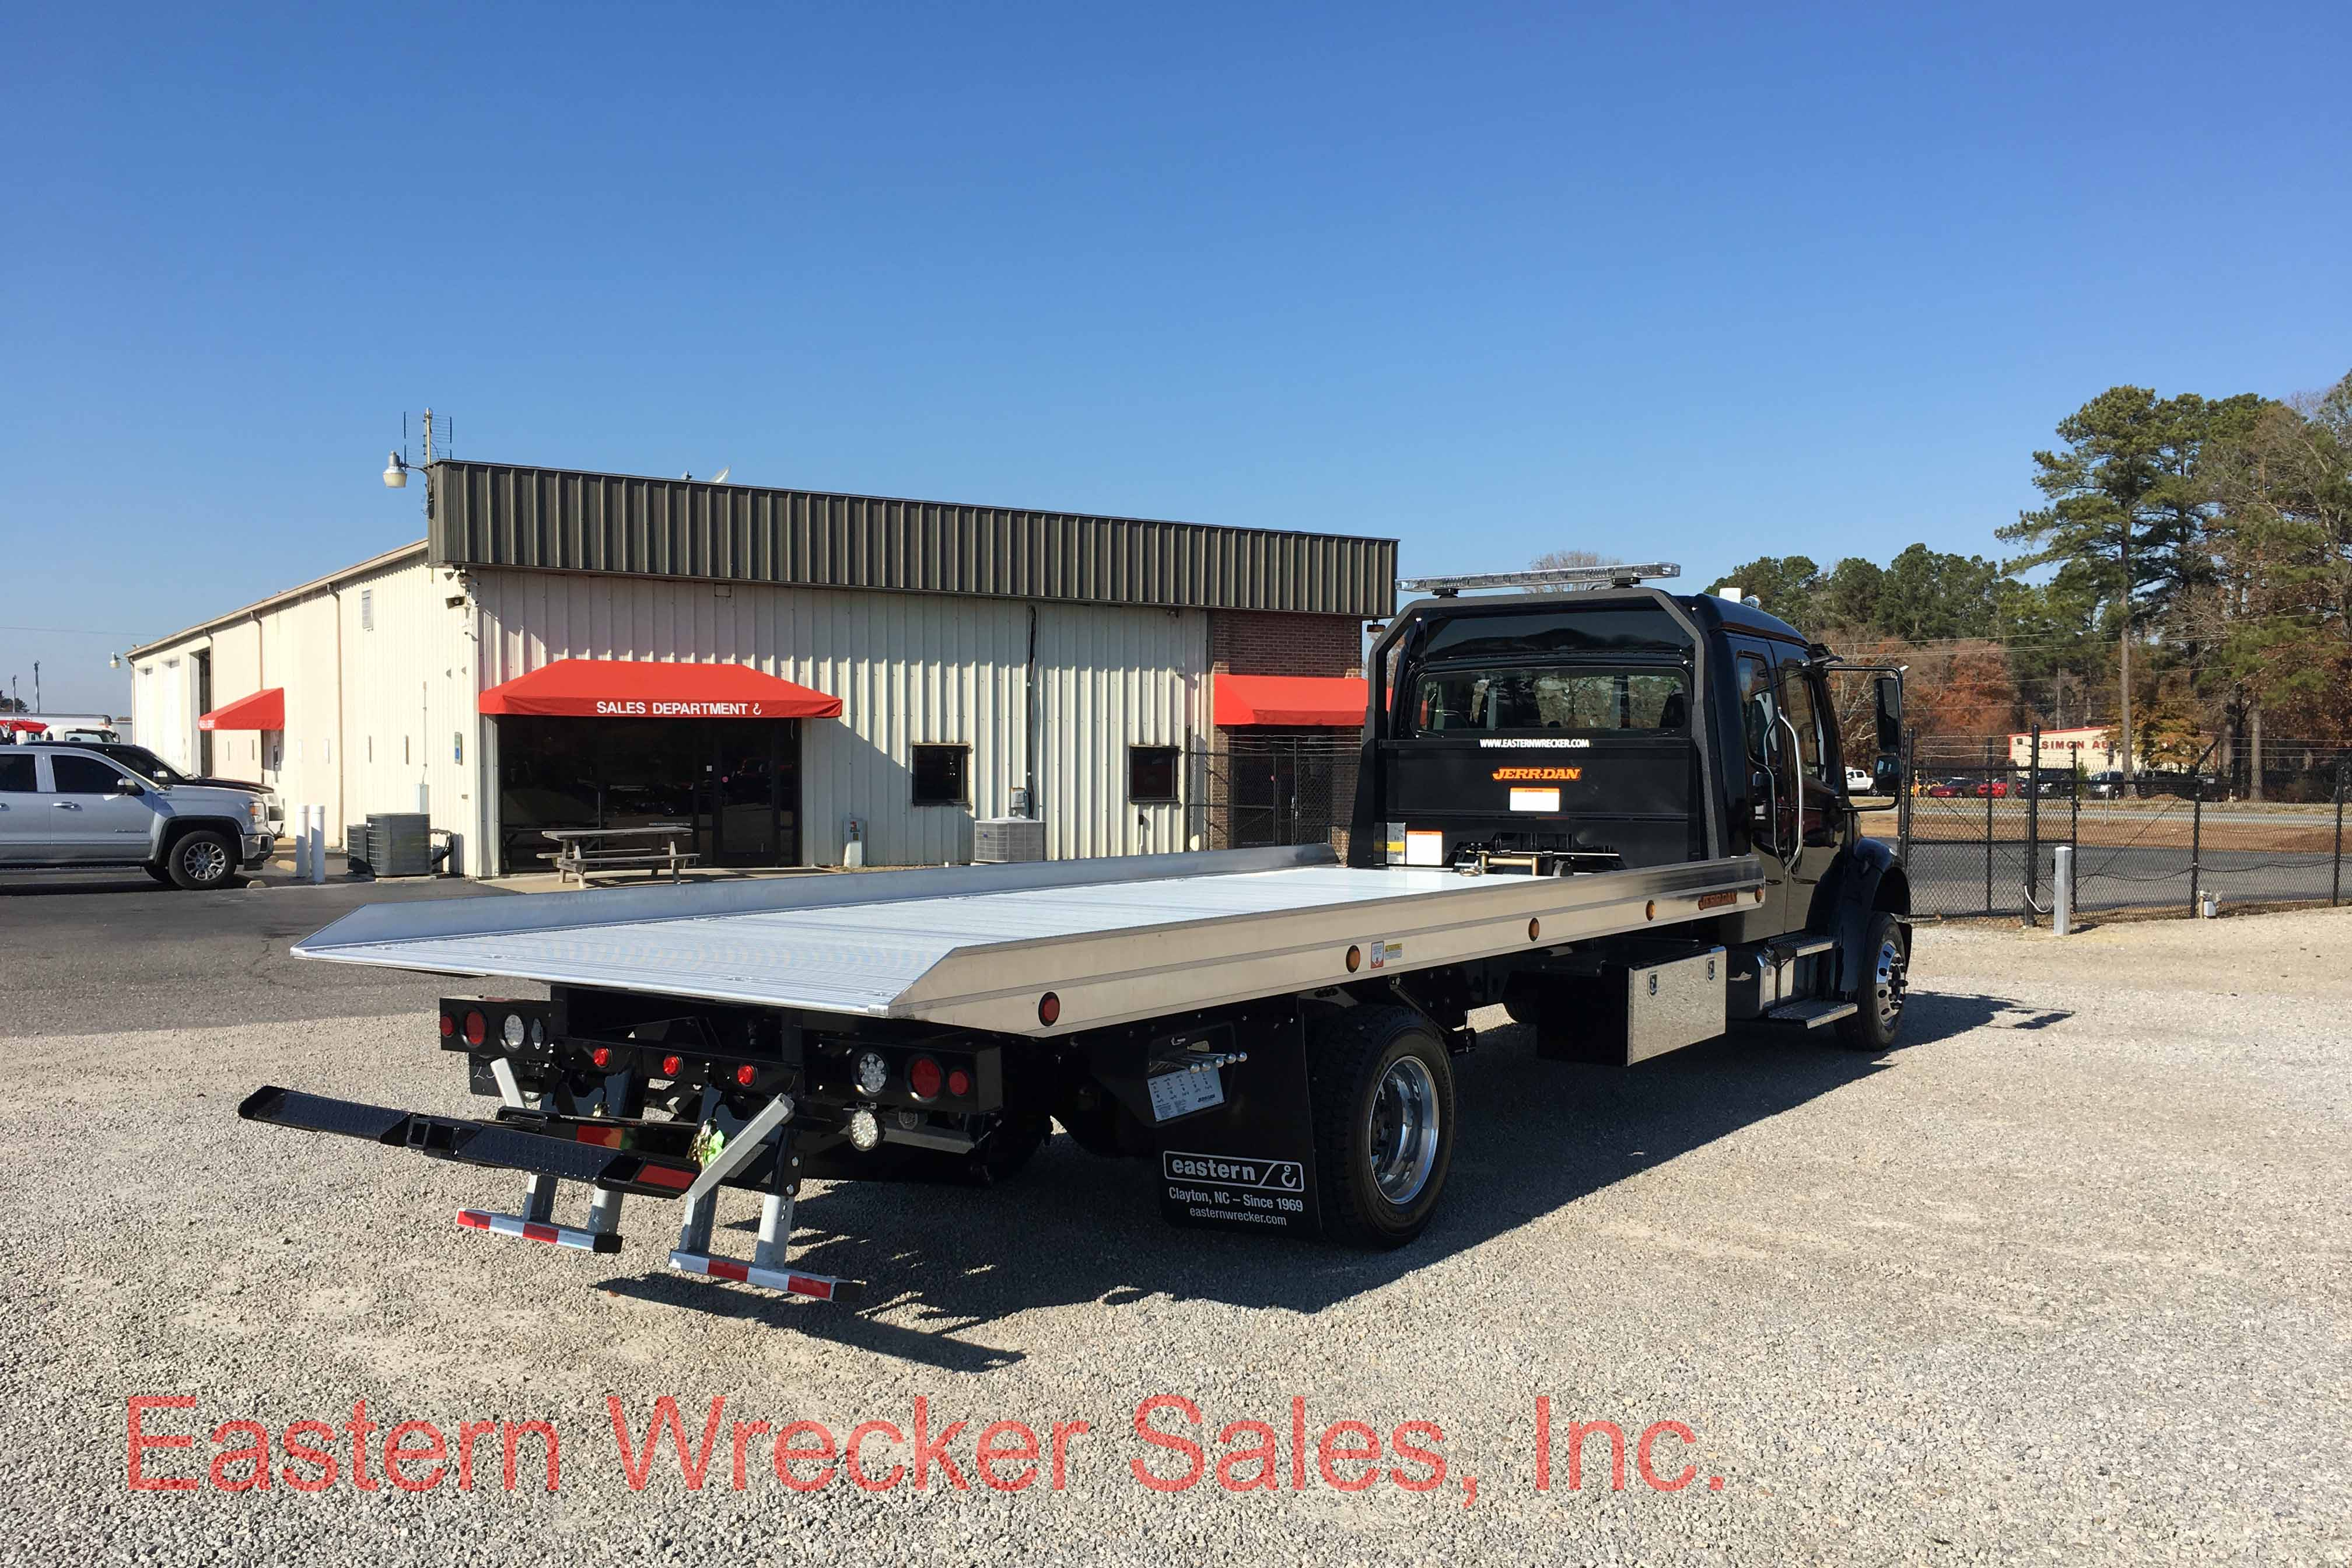 Car Carrier For Sale >> 2018 Freightliner M2 Extended Cab With A Jerr Dan 21 Aluminum